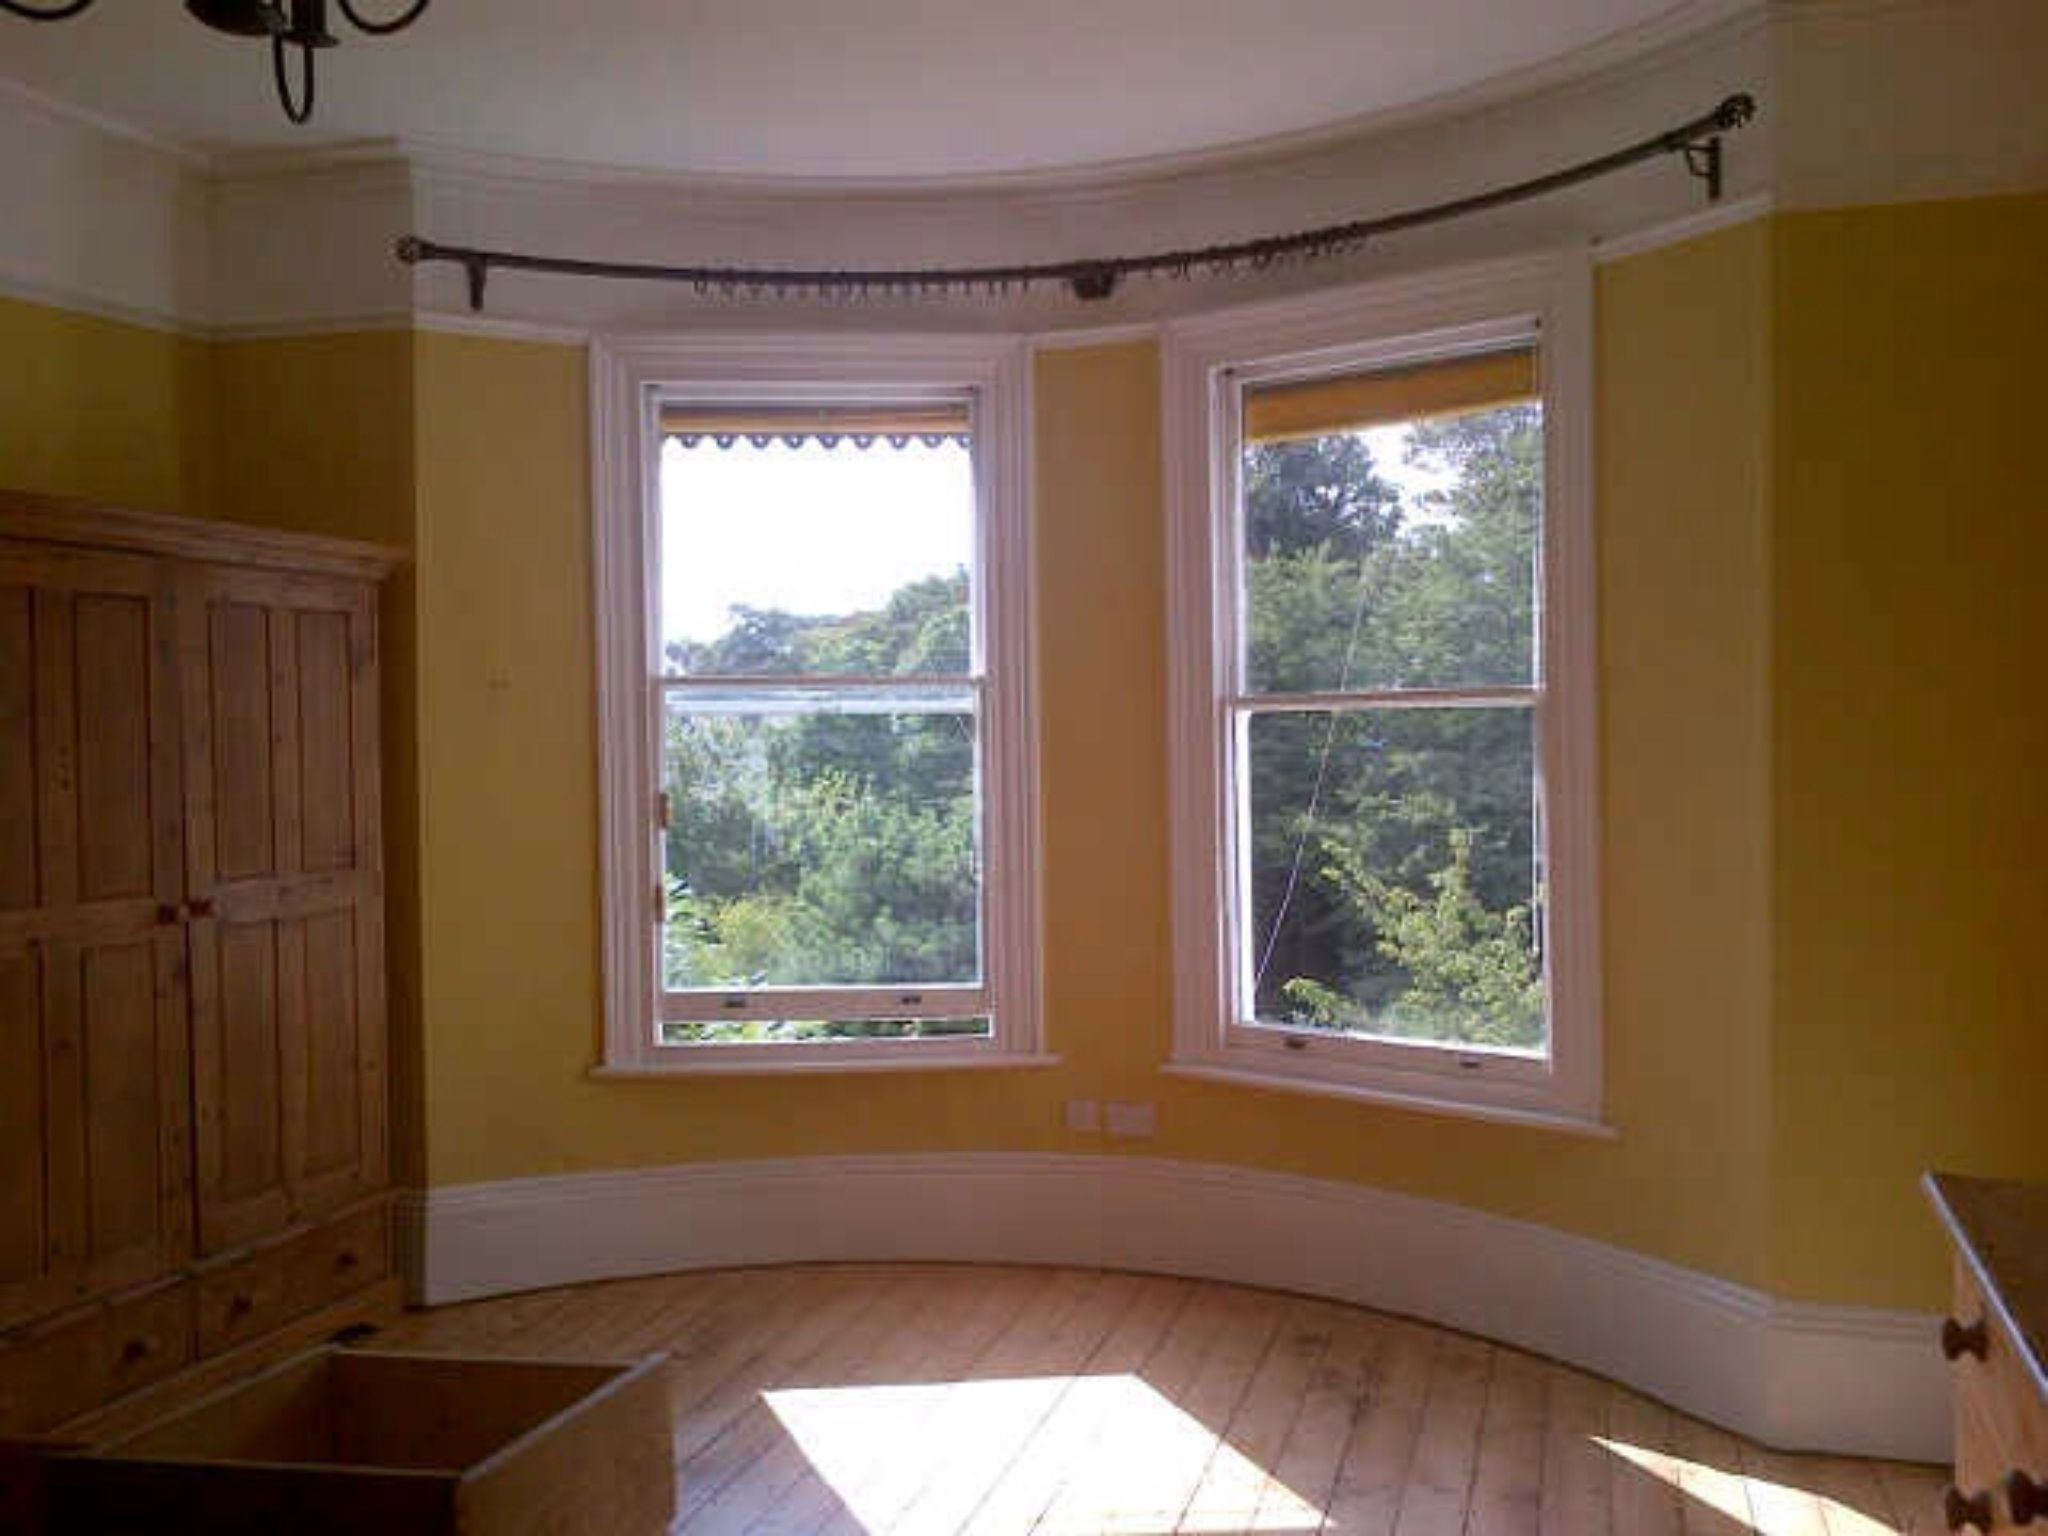 Curtain Pole For Curved Bay Window With Only Three Brackets